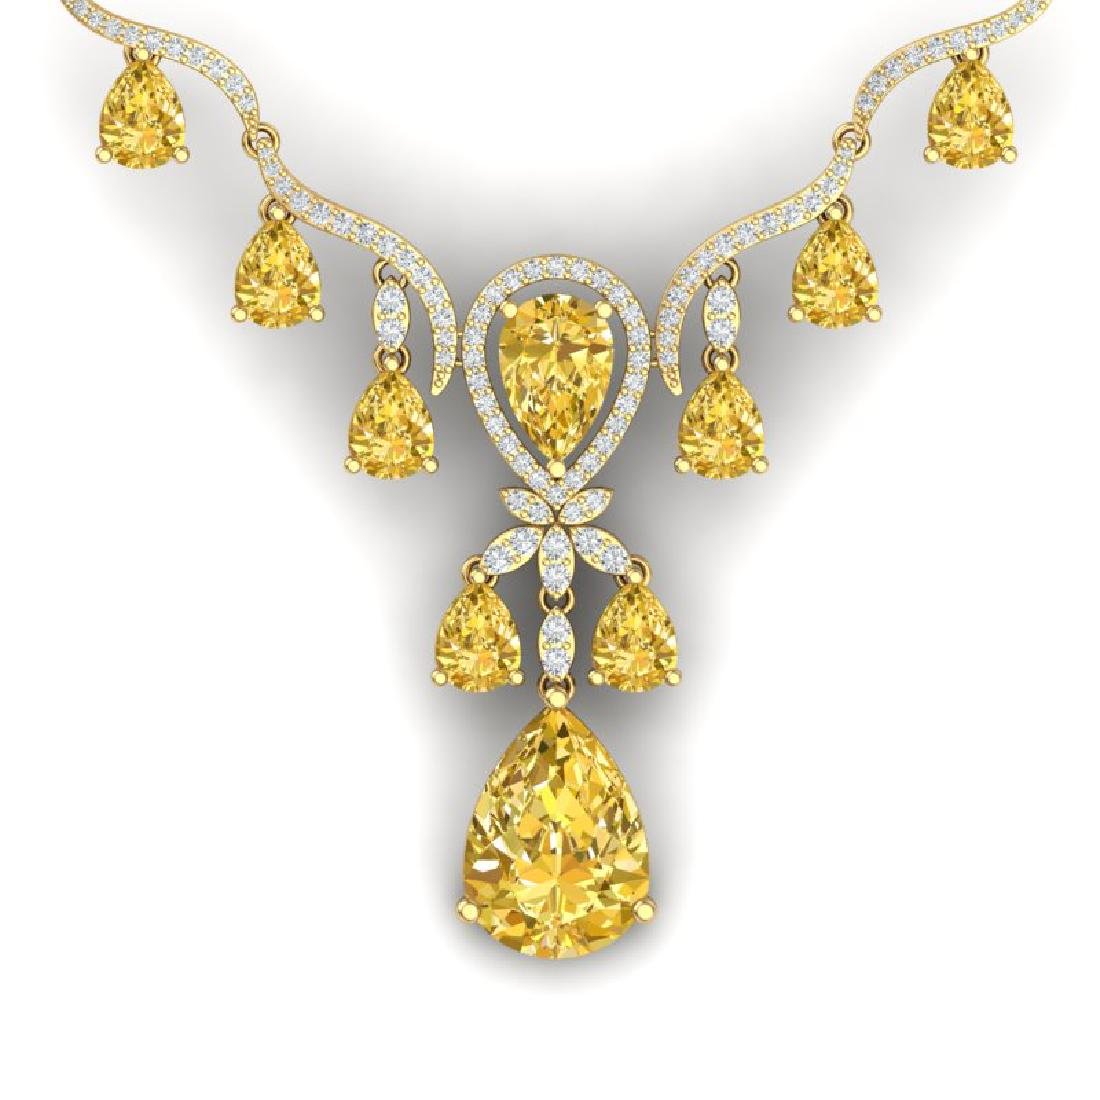 34.70 CTW Royalty Canary Citrine & VS Diamond Necklace